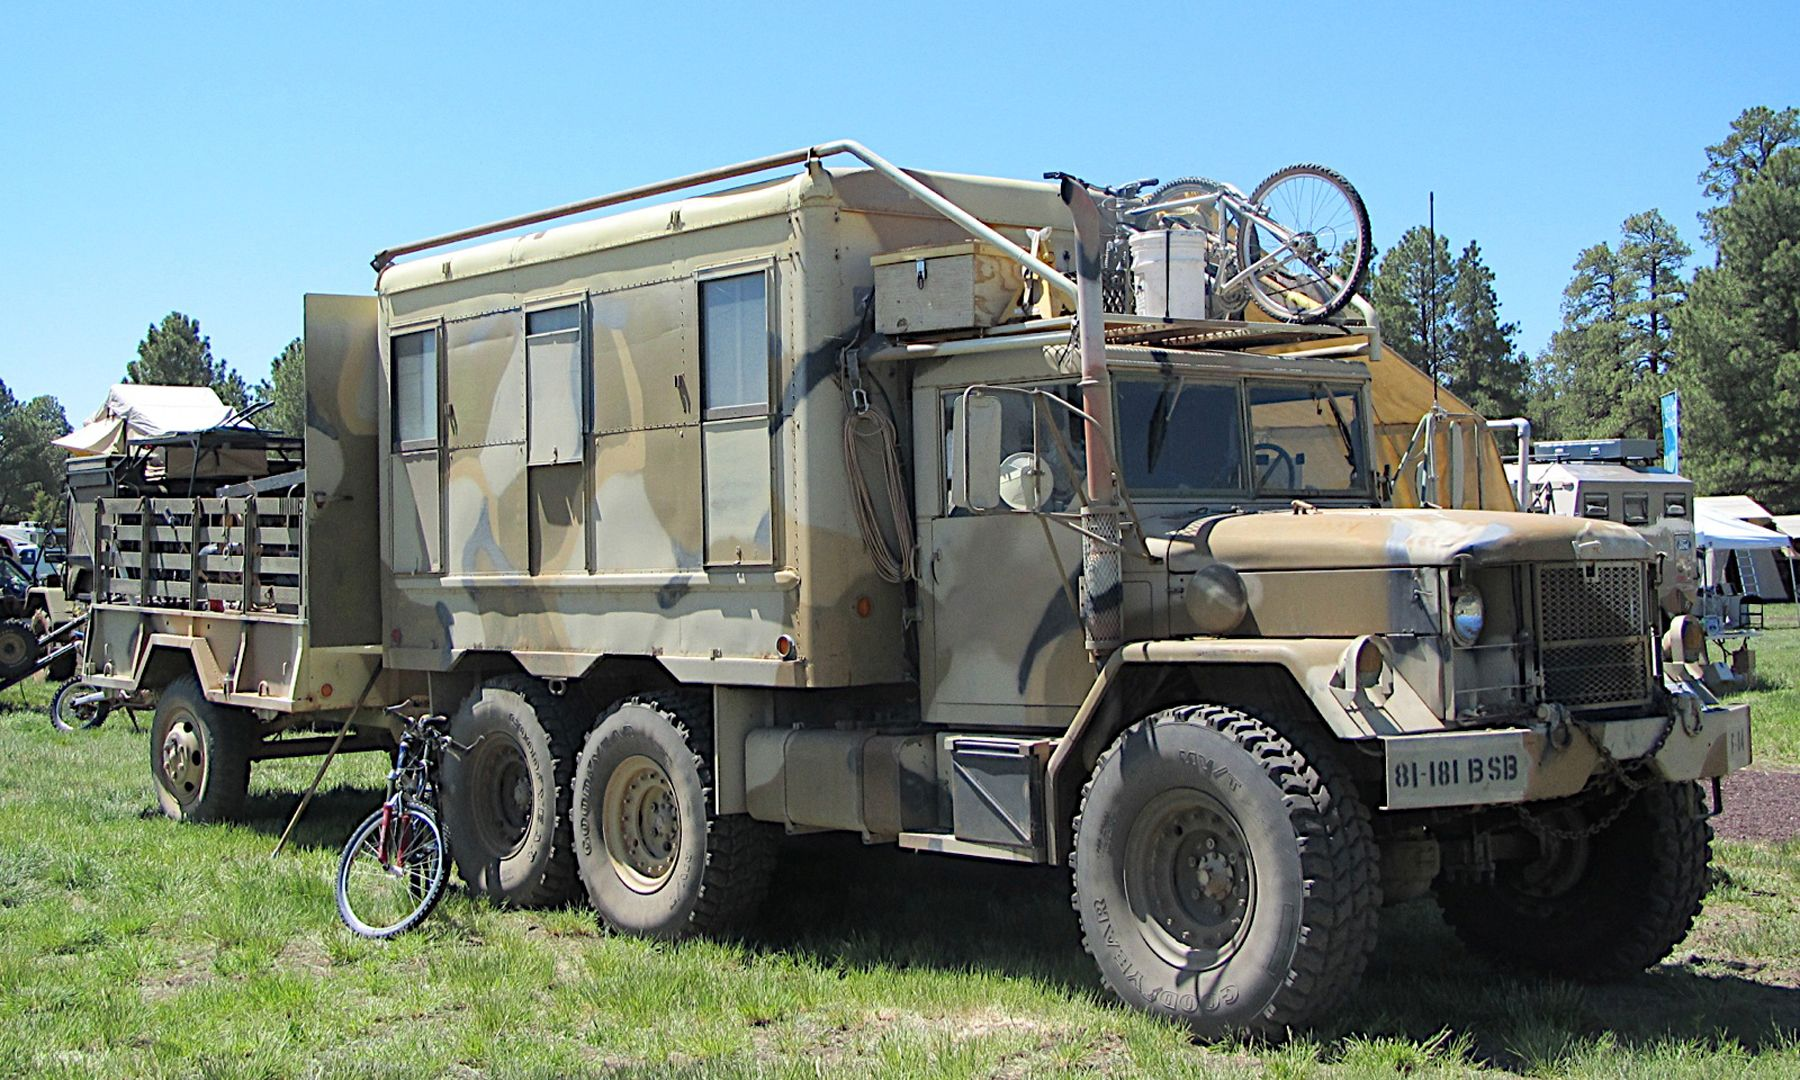 This 2 5 Ton Am General Military Truck Is An M109 An